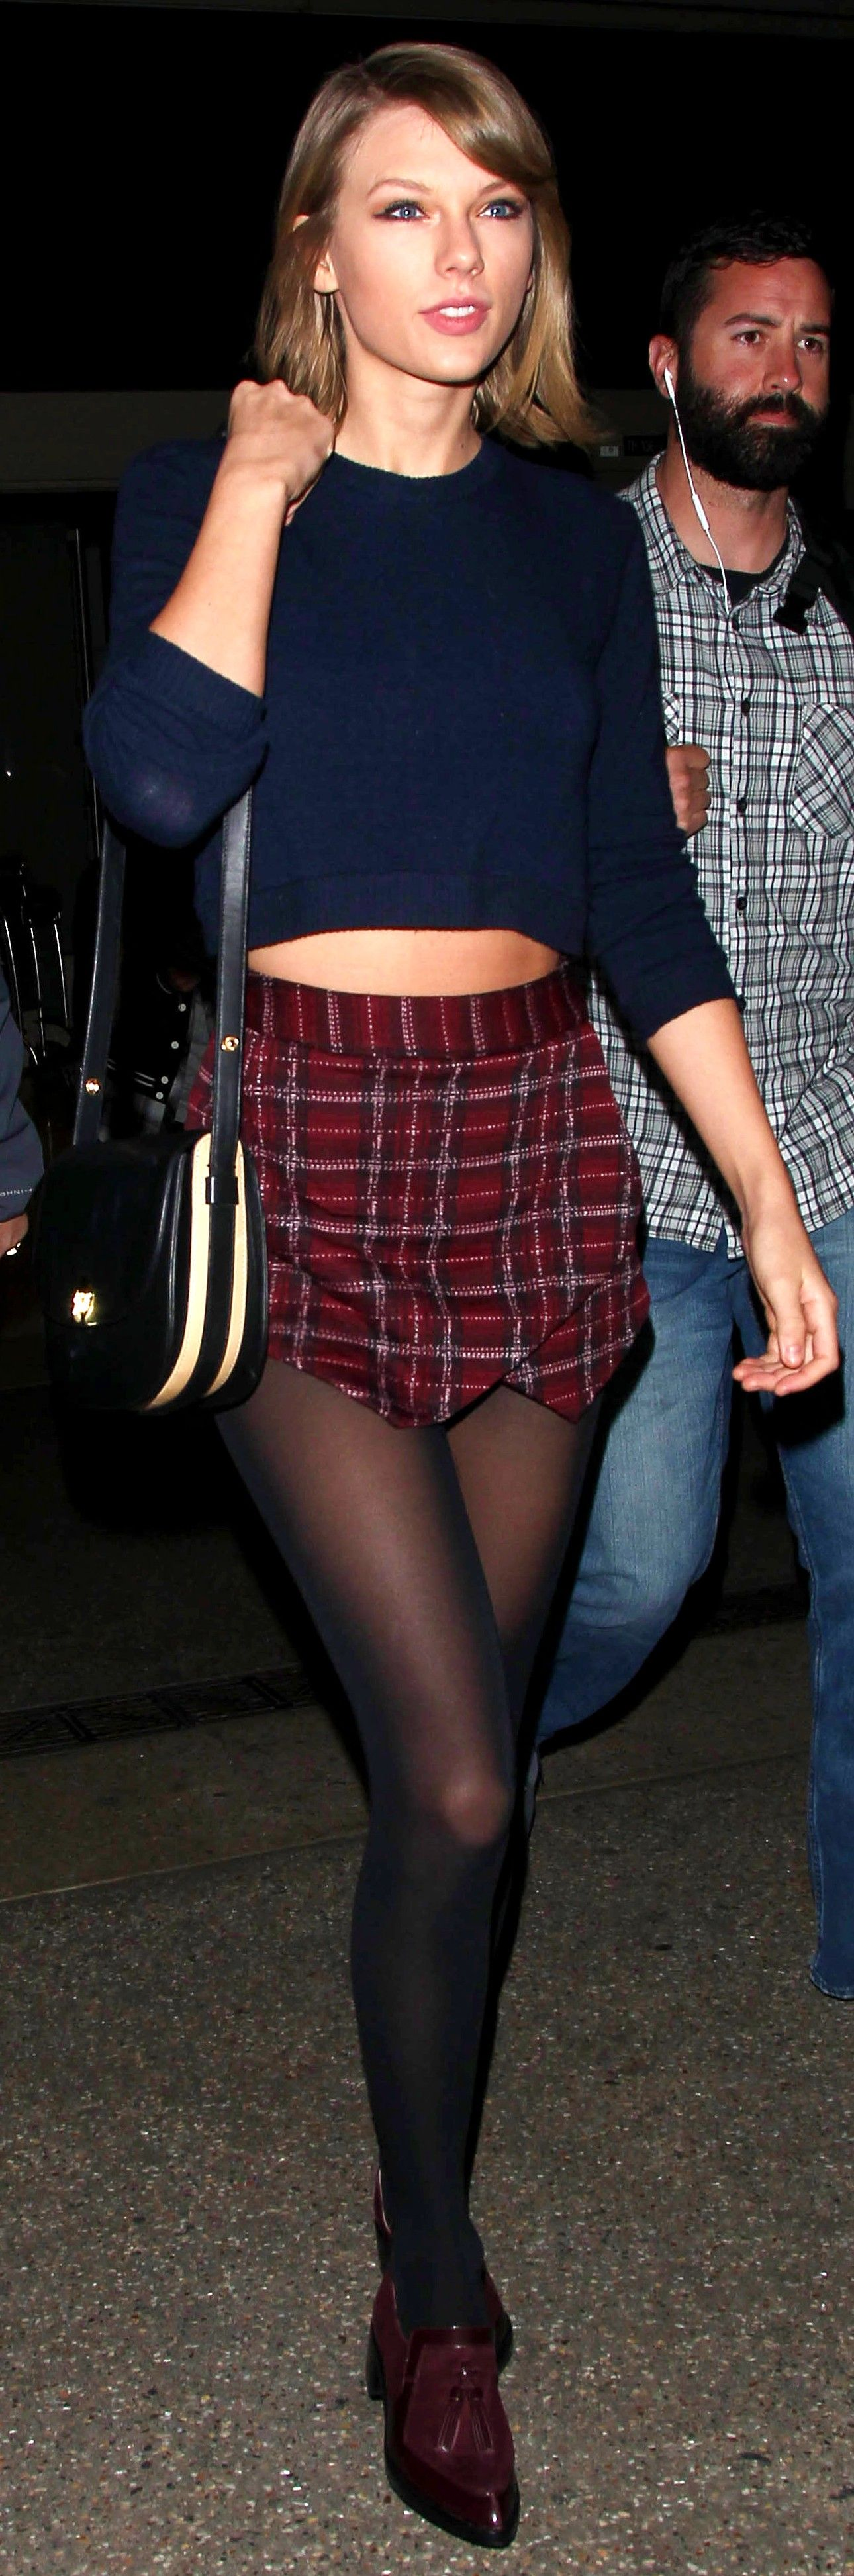 Taylor Swift ; Arriving at Lax Airport in Los Angeles ; December 2015 ; Brandy Melville sweater, Aqua skort, Zimmermann loafers, Zimmermann bag & Wolford tights